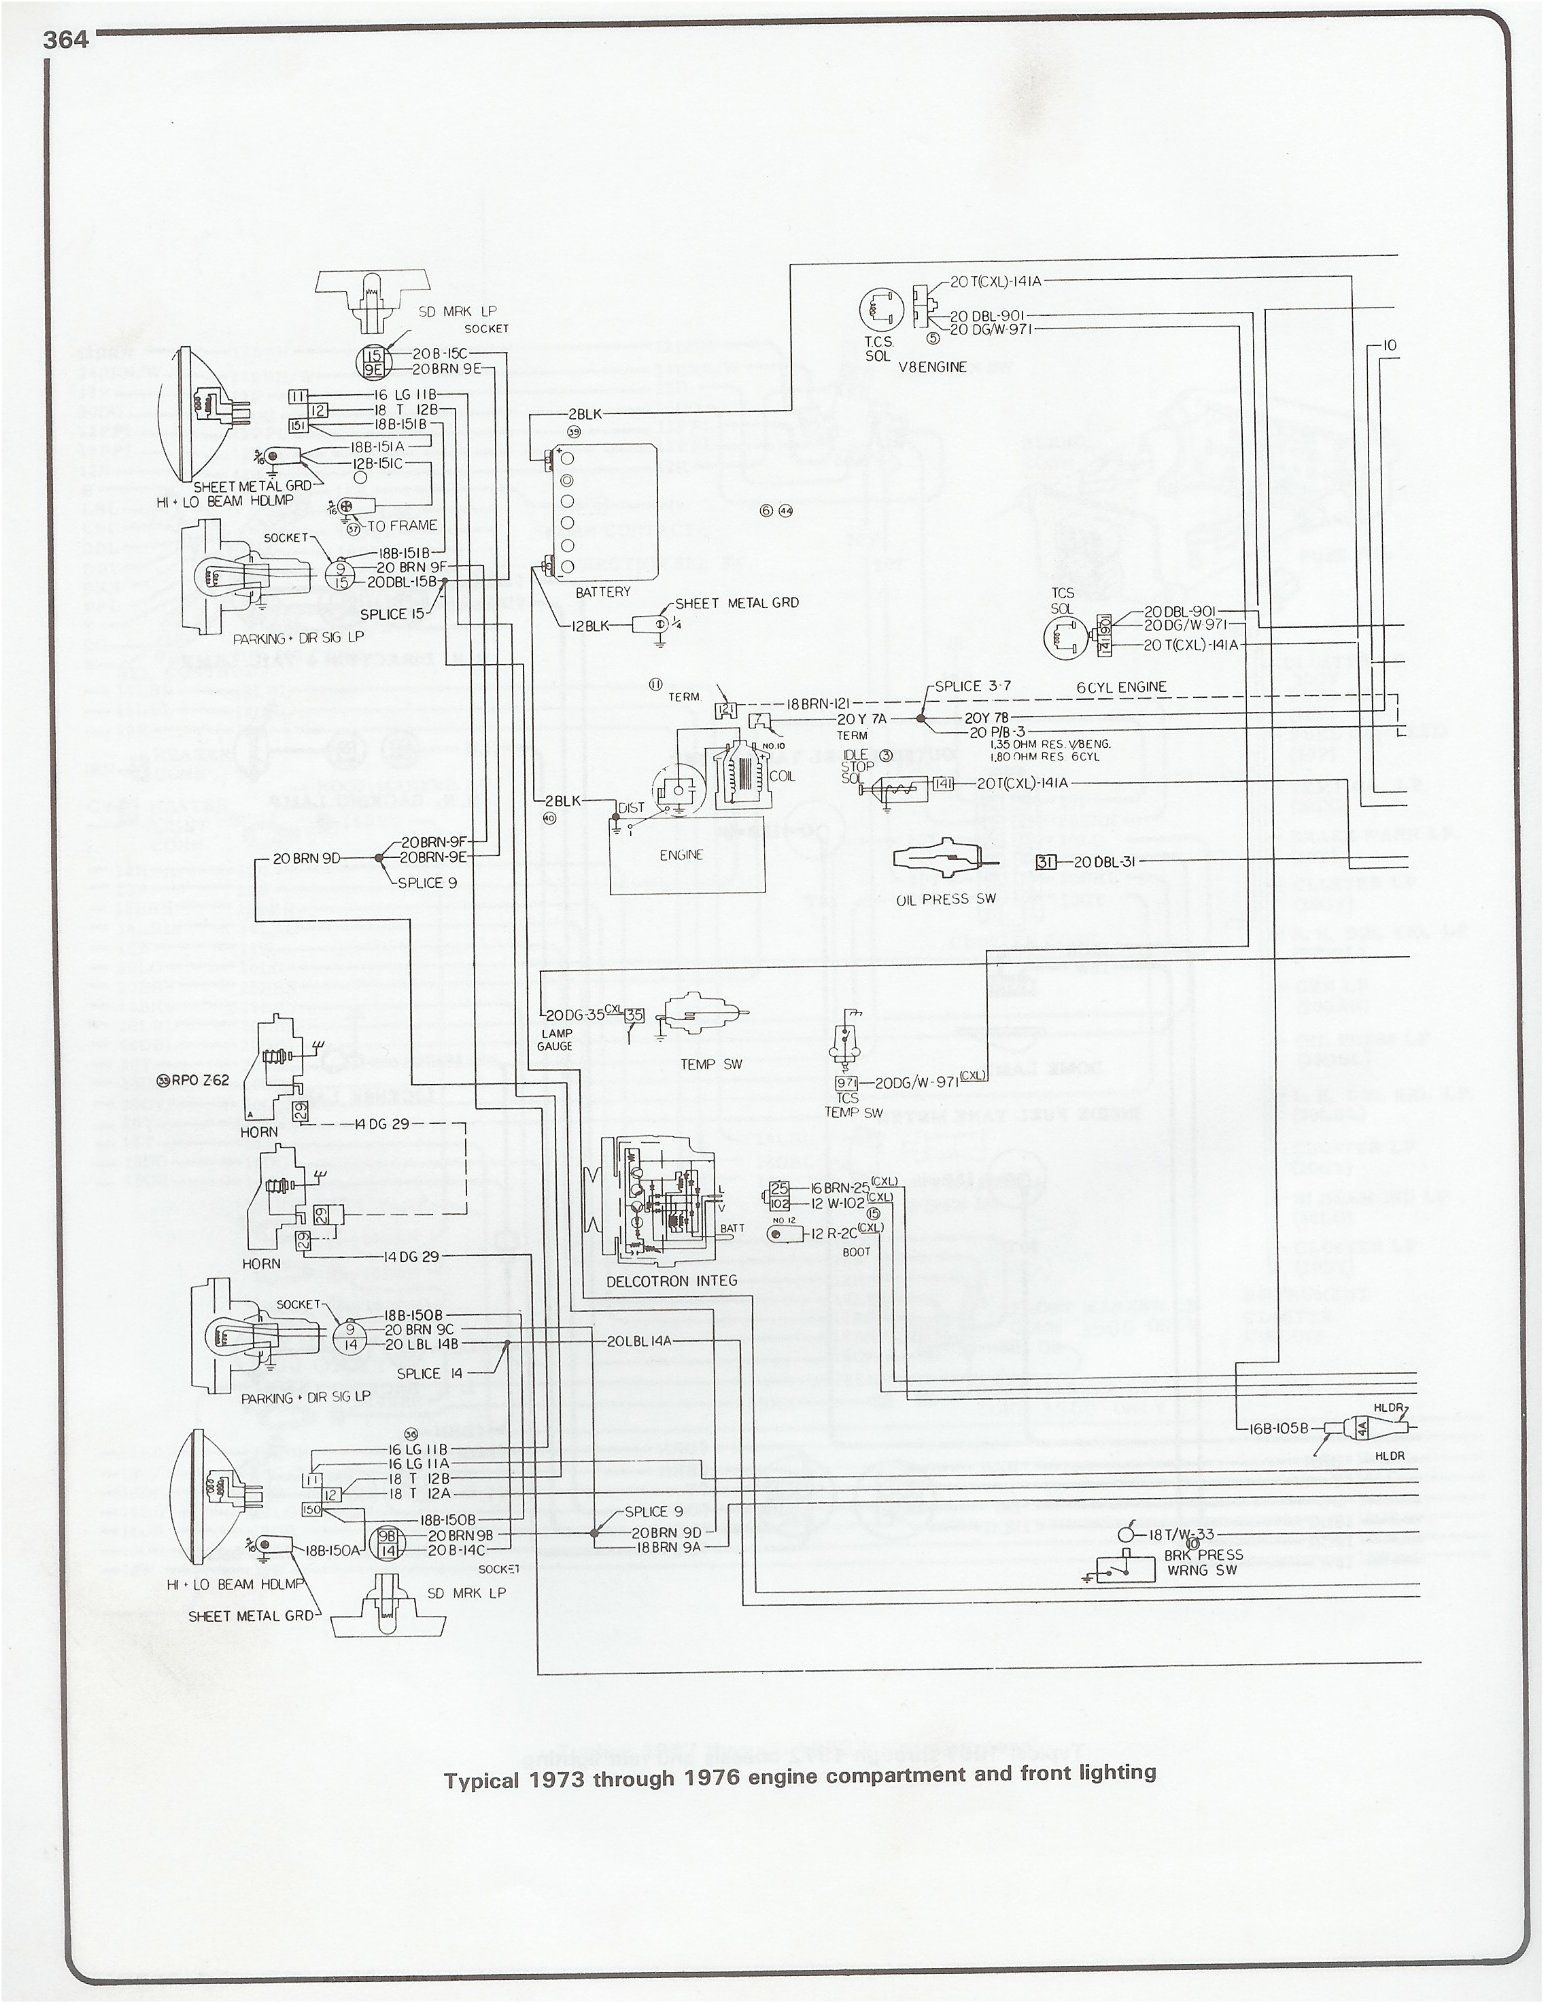 1976 gmc fuse panel diagram wiring diagram used1976 gmc silverado fuse box wiring diagram new 1976 [ 1544 x 2003 Pixel ]